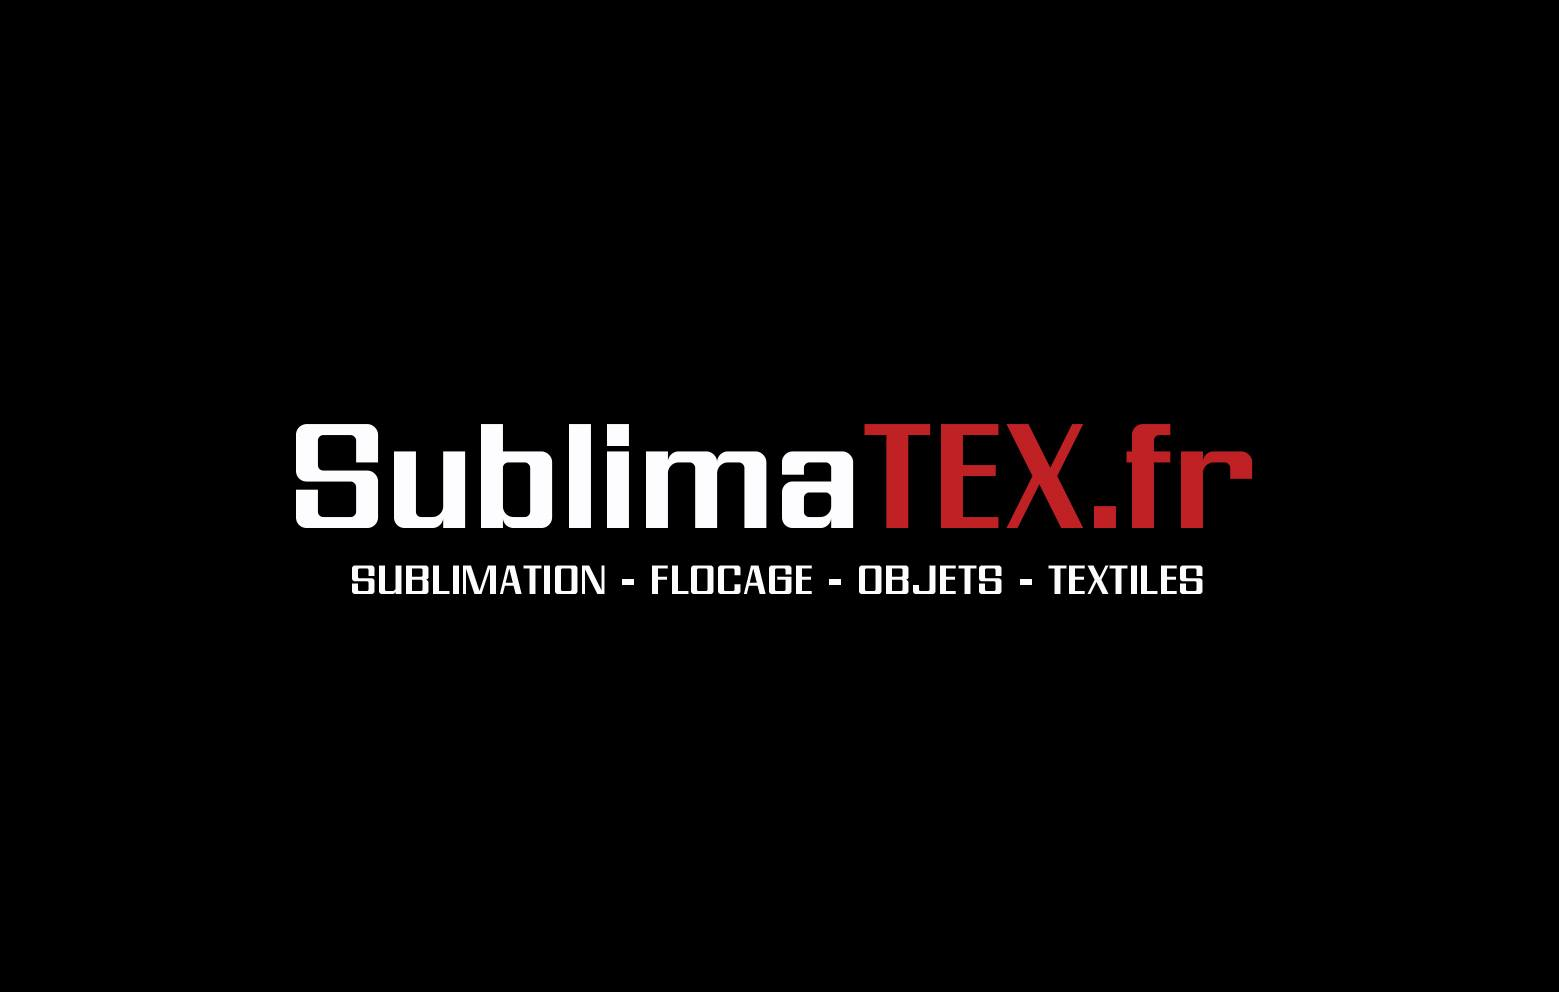 sublimatex